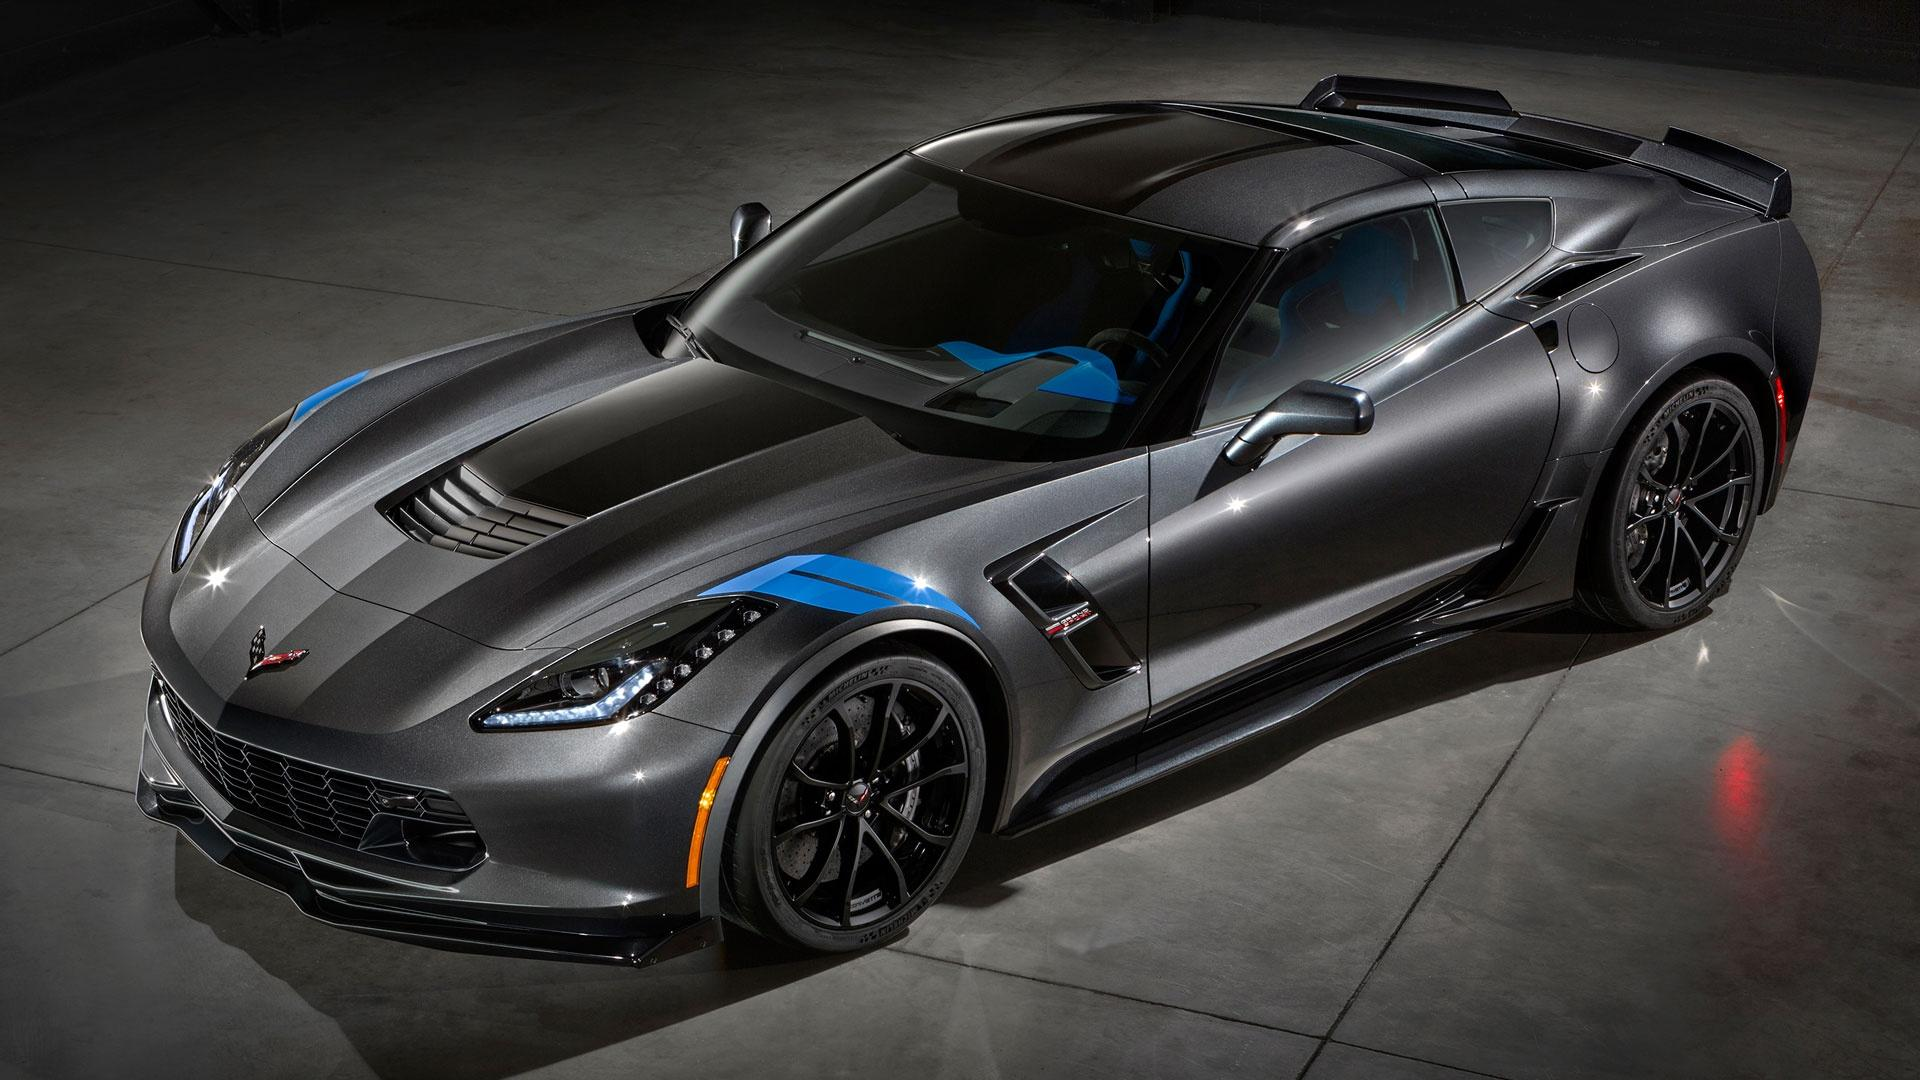 2017 Chevrolet Corvette Grand Sport 2016 Mini Cooper